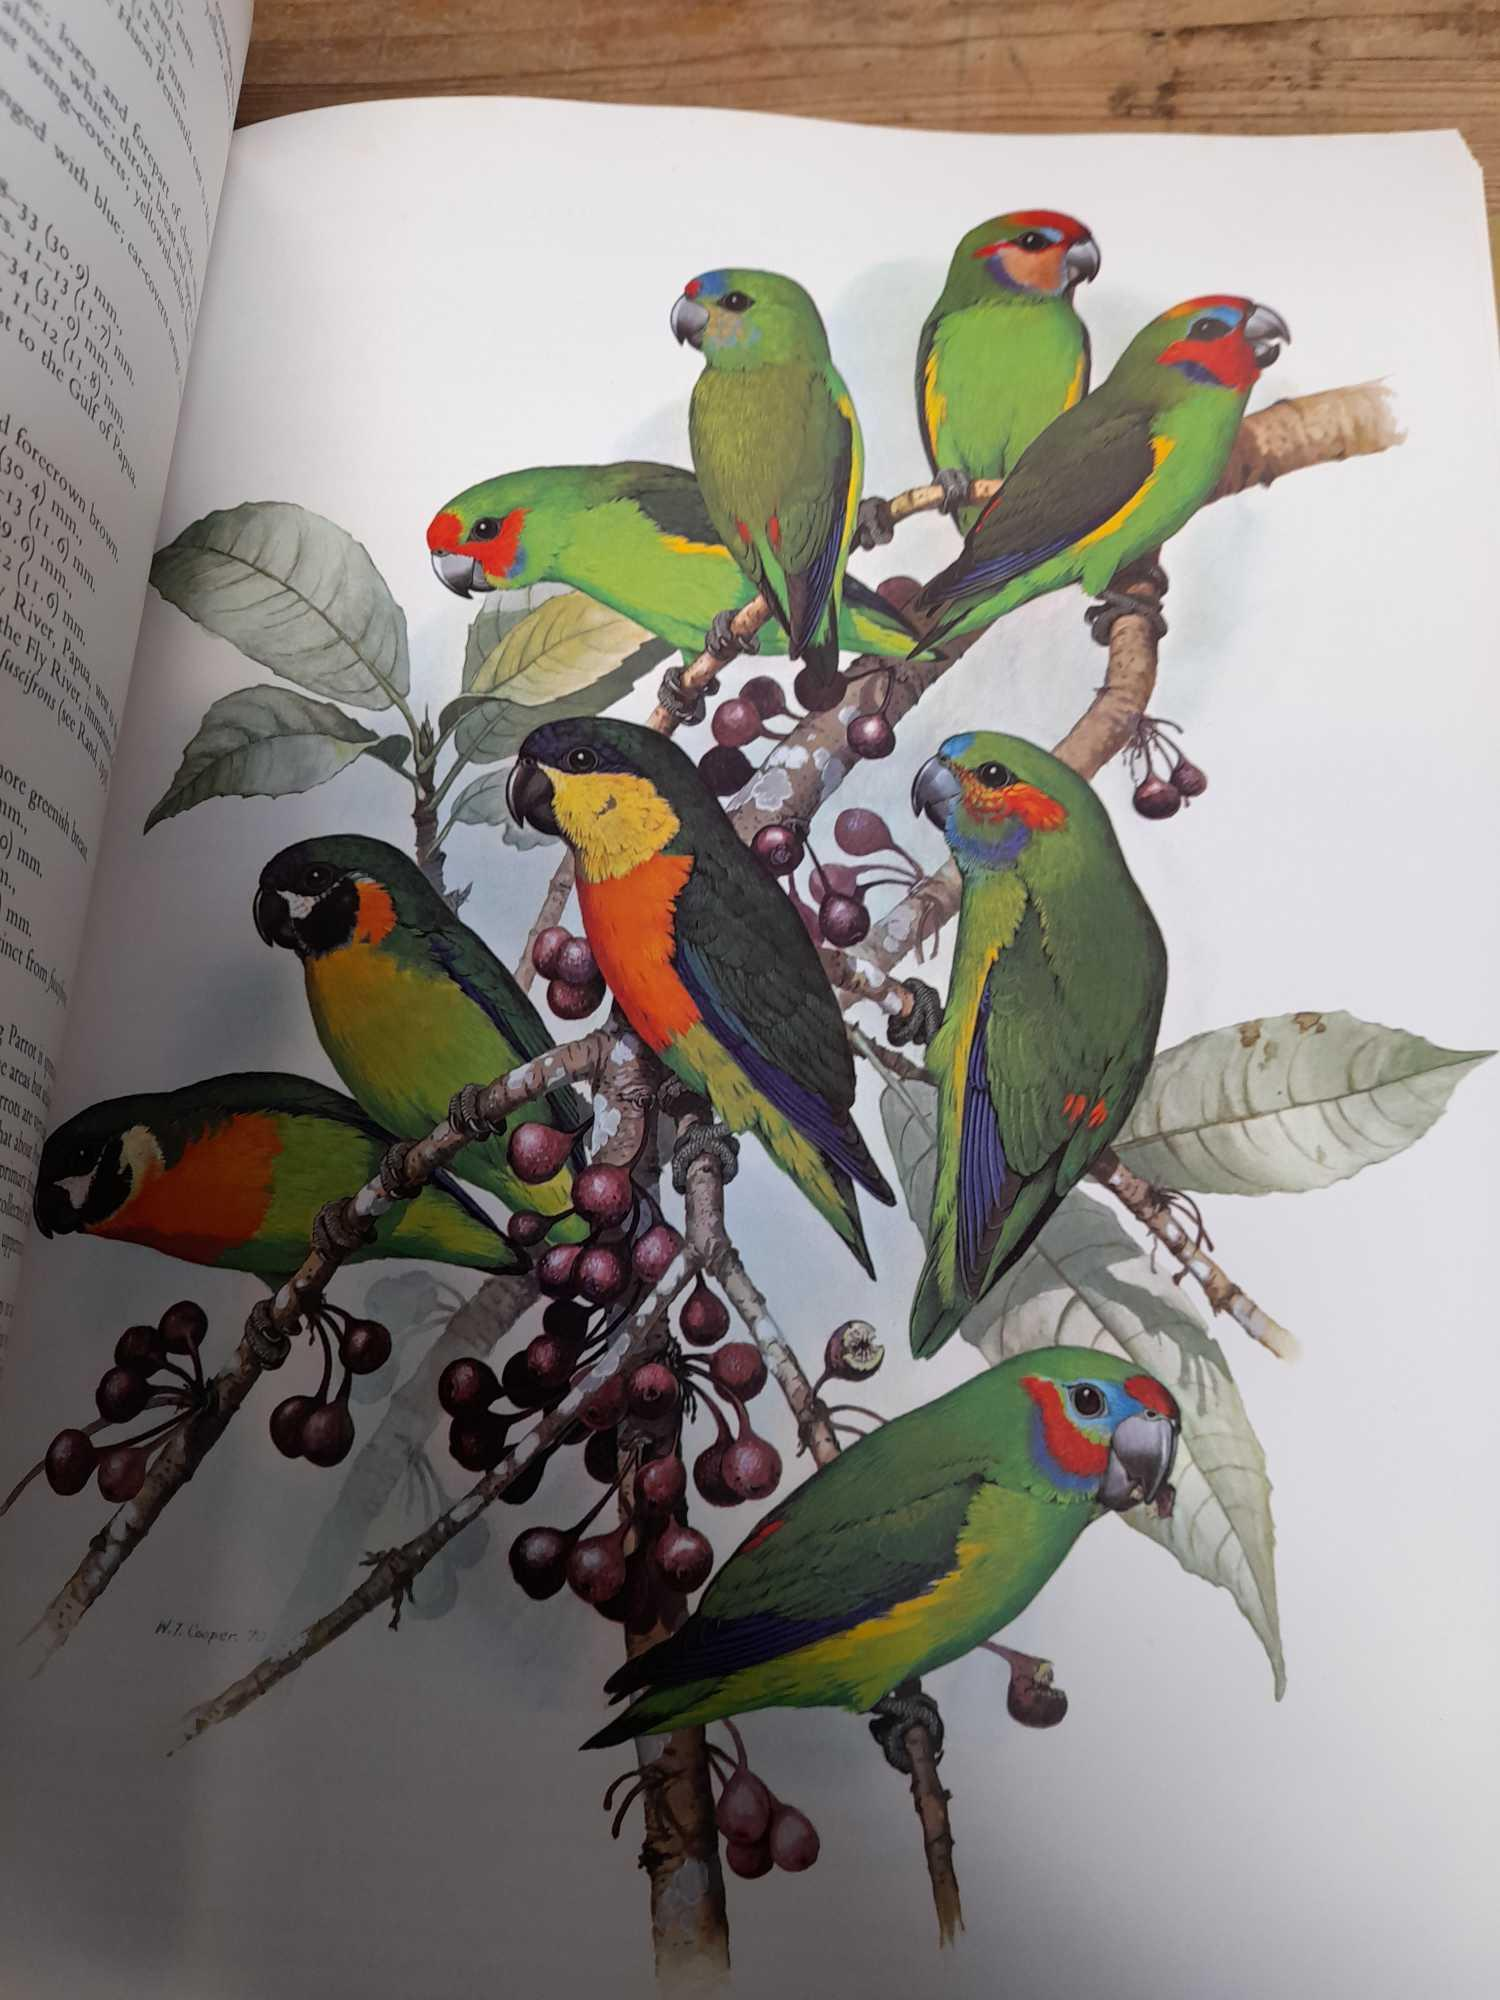 3 PARROT BOOKS - Image 20 of 20